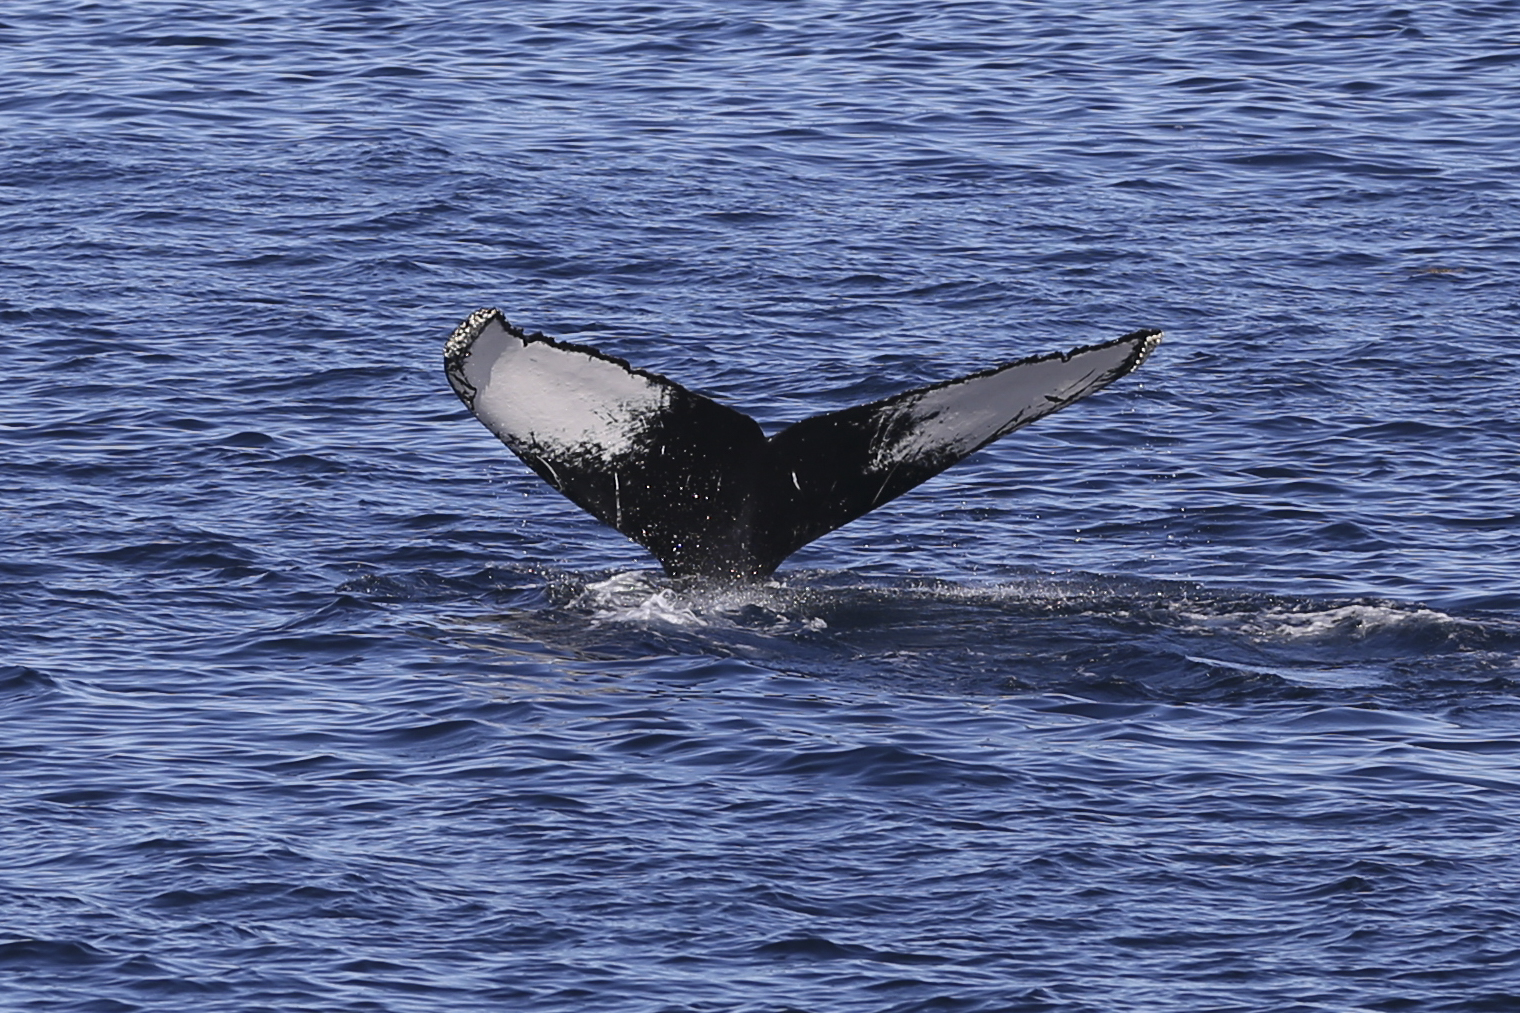 The same humpback nicely showing it's tail pattern